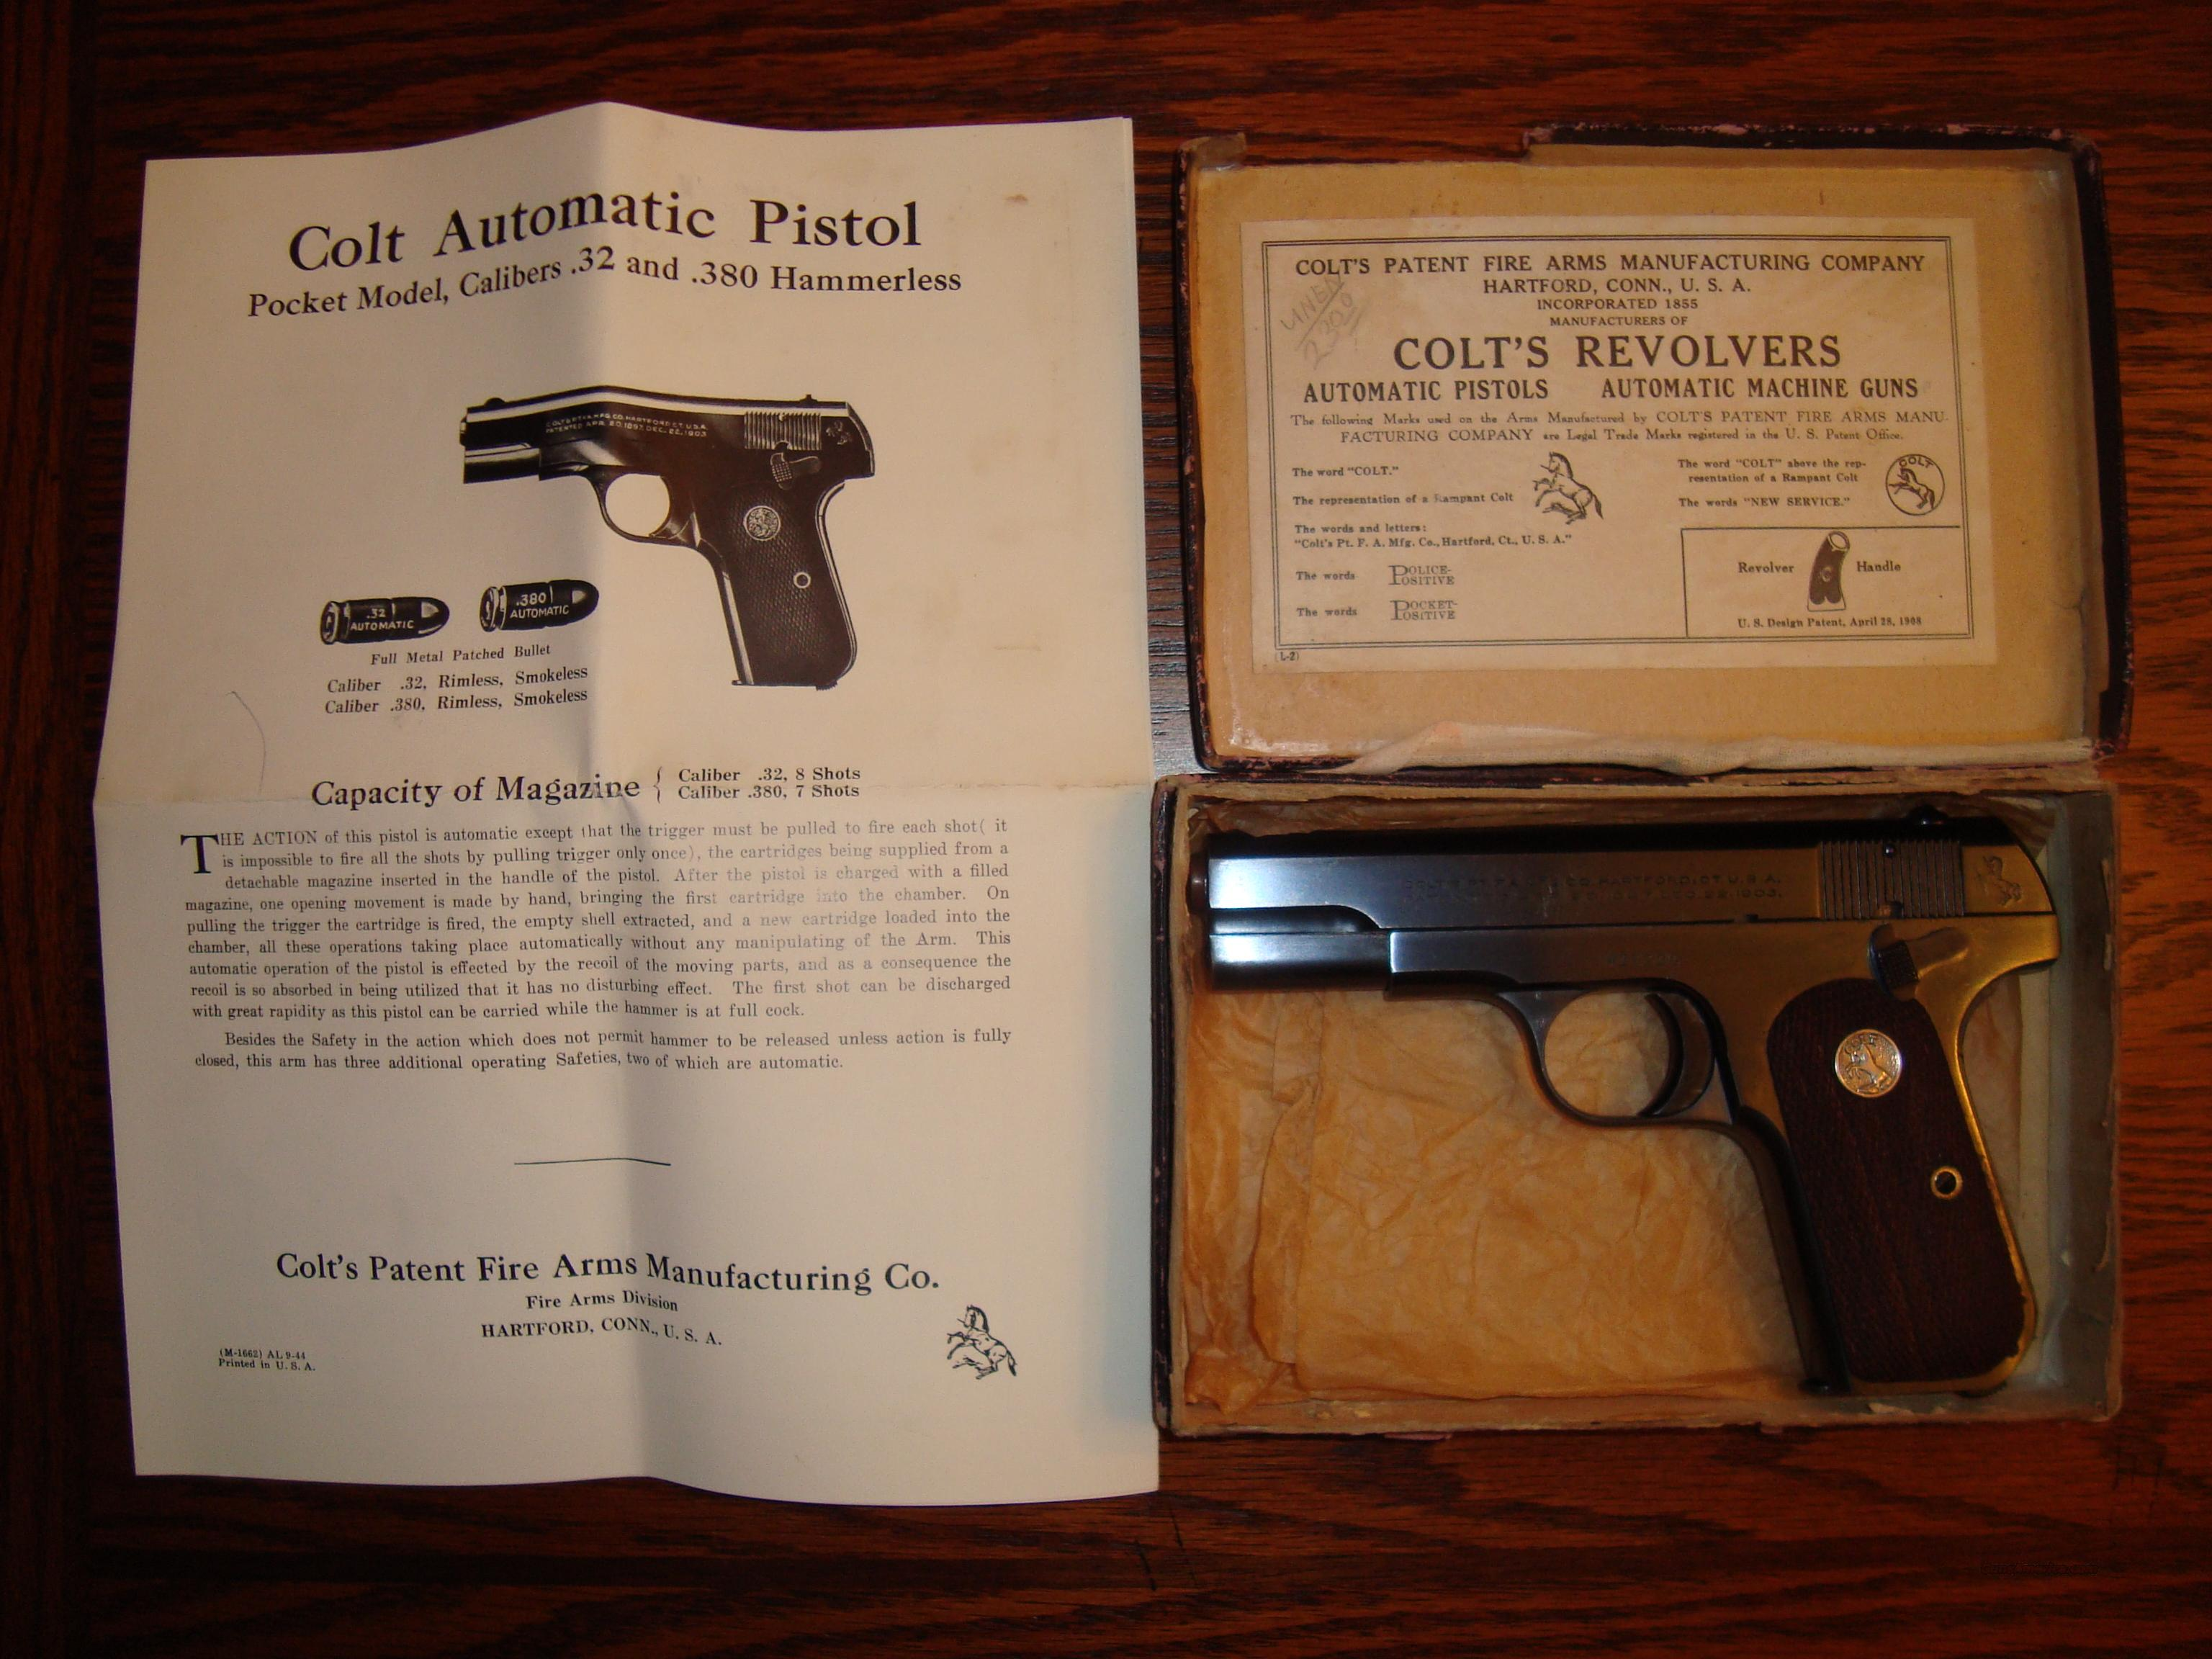 Like New Colt 1903 Hammerless Pocket Pistol with Box & Papers .32 cal  Guns > Pistols > Colt Automatic Pistols (.25, .32, & .380 cal)